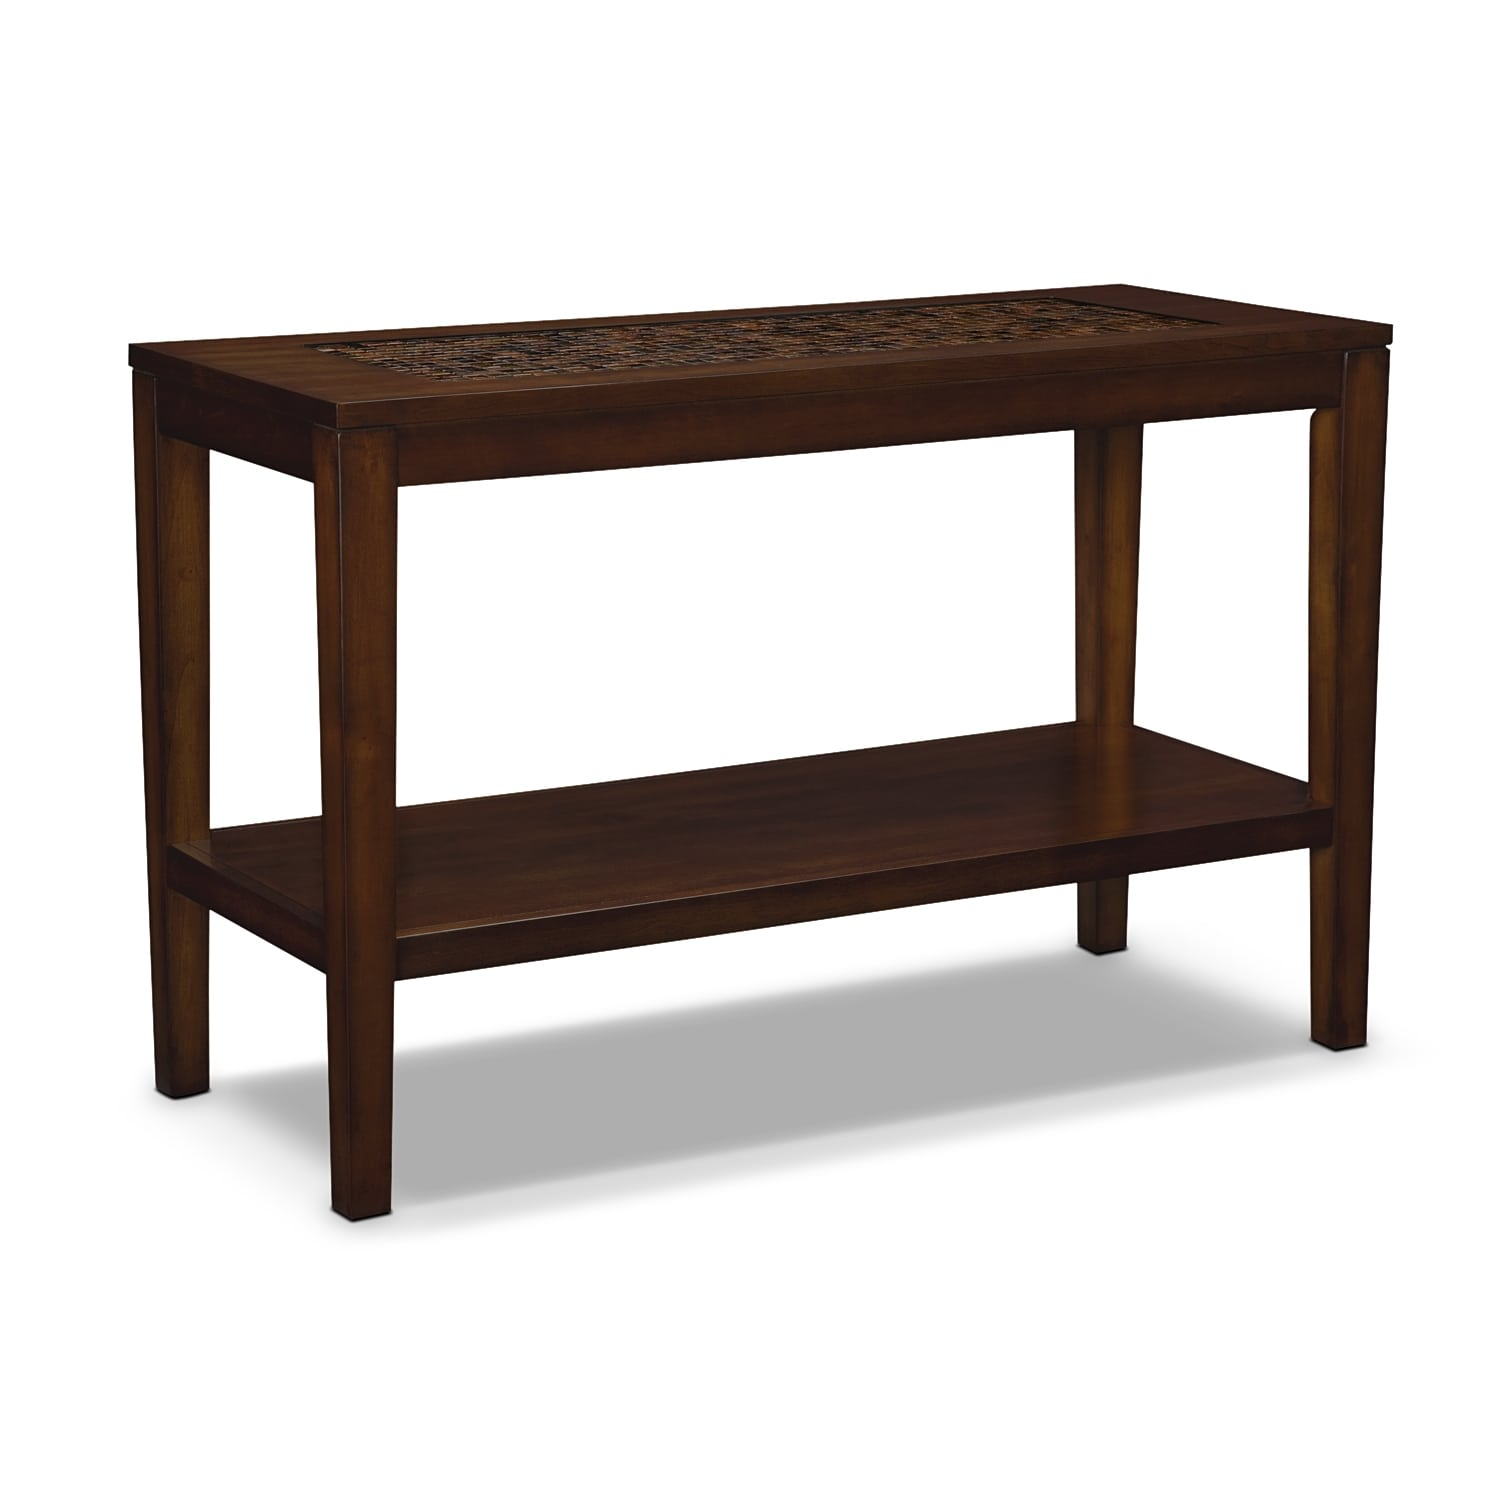 Carson occasional tables sofa table value city furniture for Furniture furniture